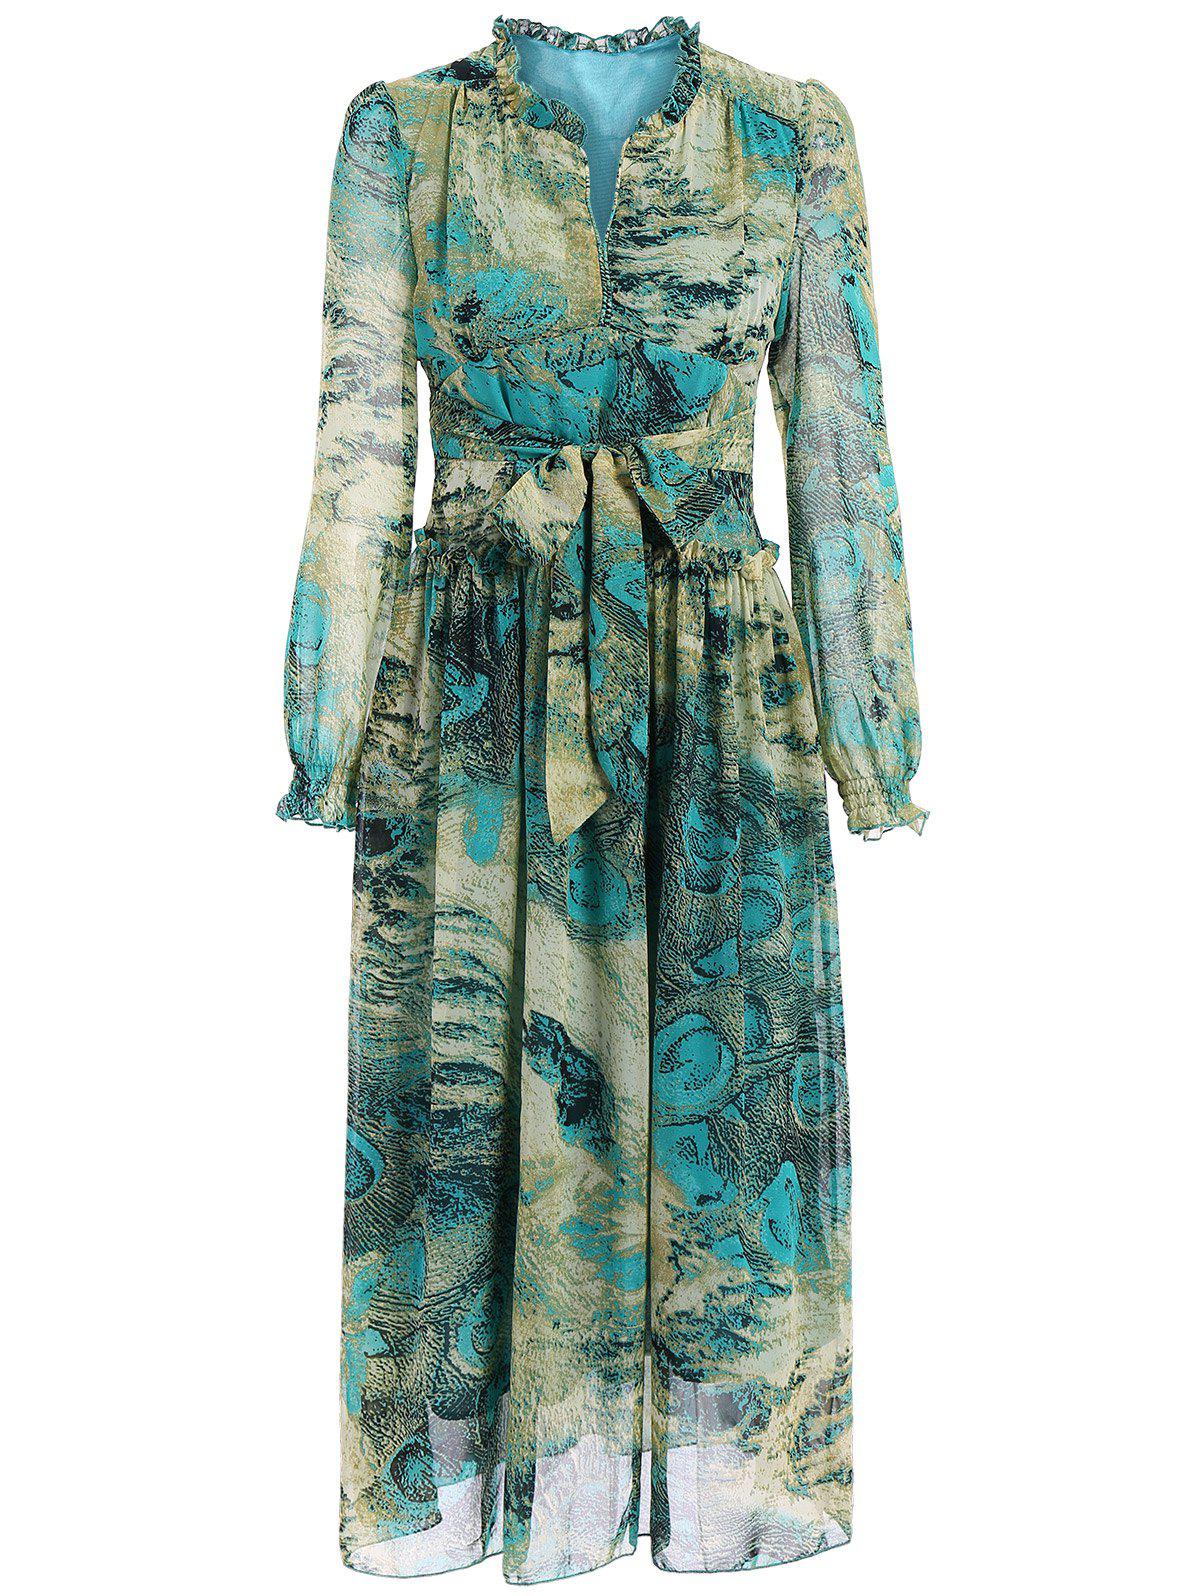 Chic Long Sleeve Peacock Feather Print Waist Tied Chiffon Dress For Women - GREEN XL